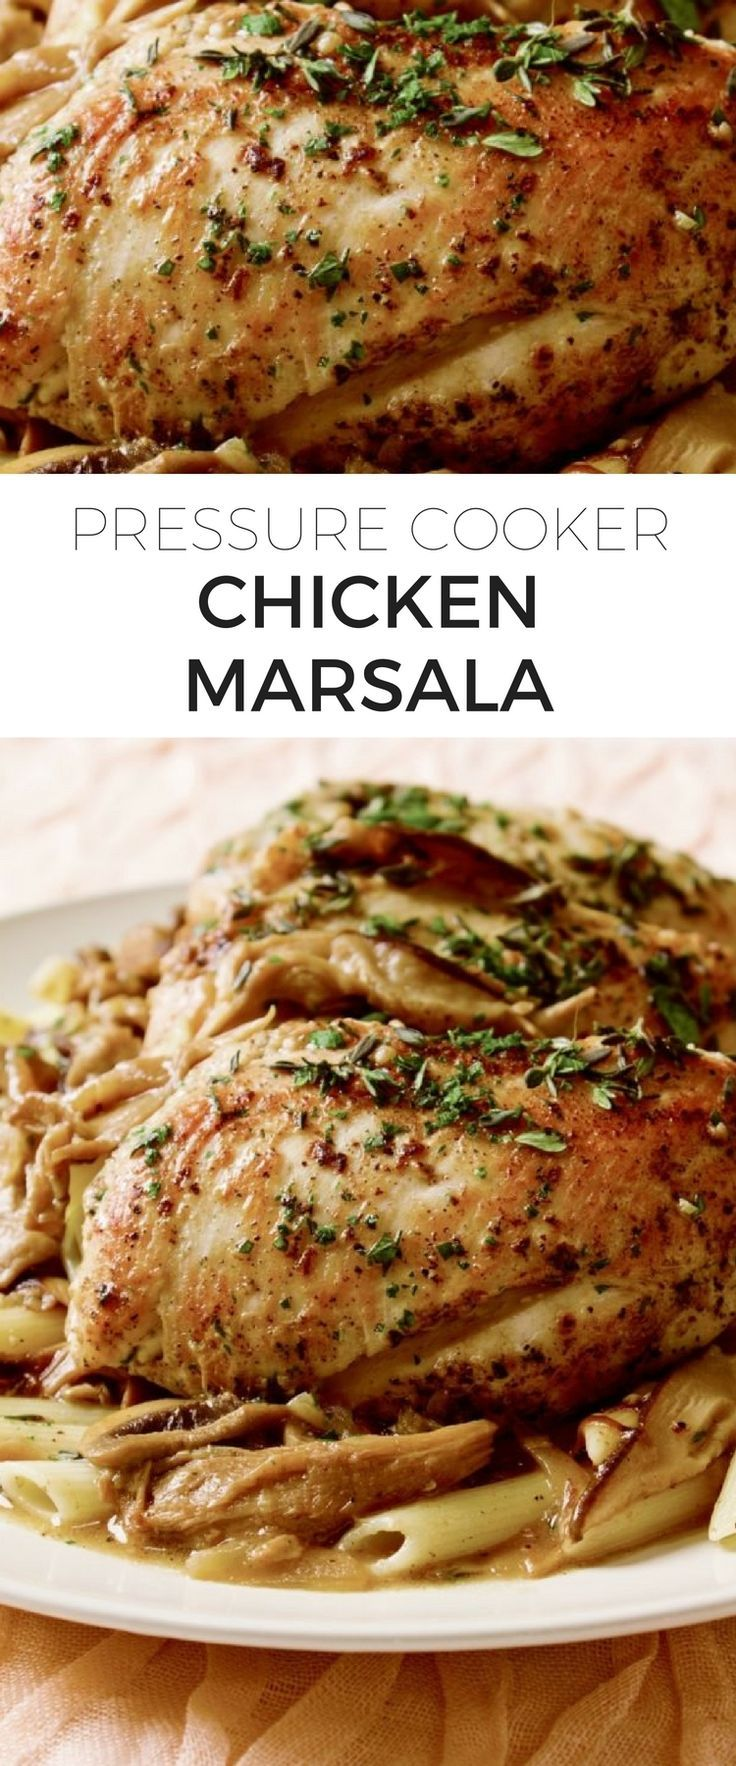 Save yourself some time by making chicken marsala in the pressure cooker! This classic and flavorful Italian dish now takes even less time to make!